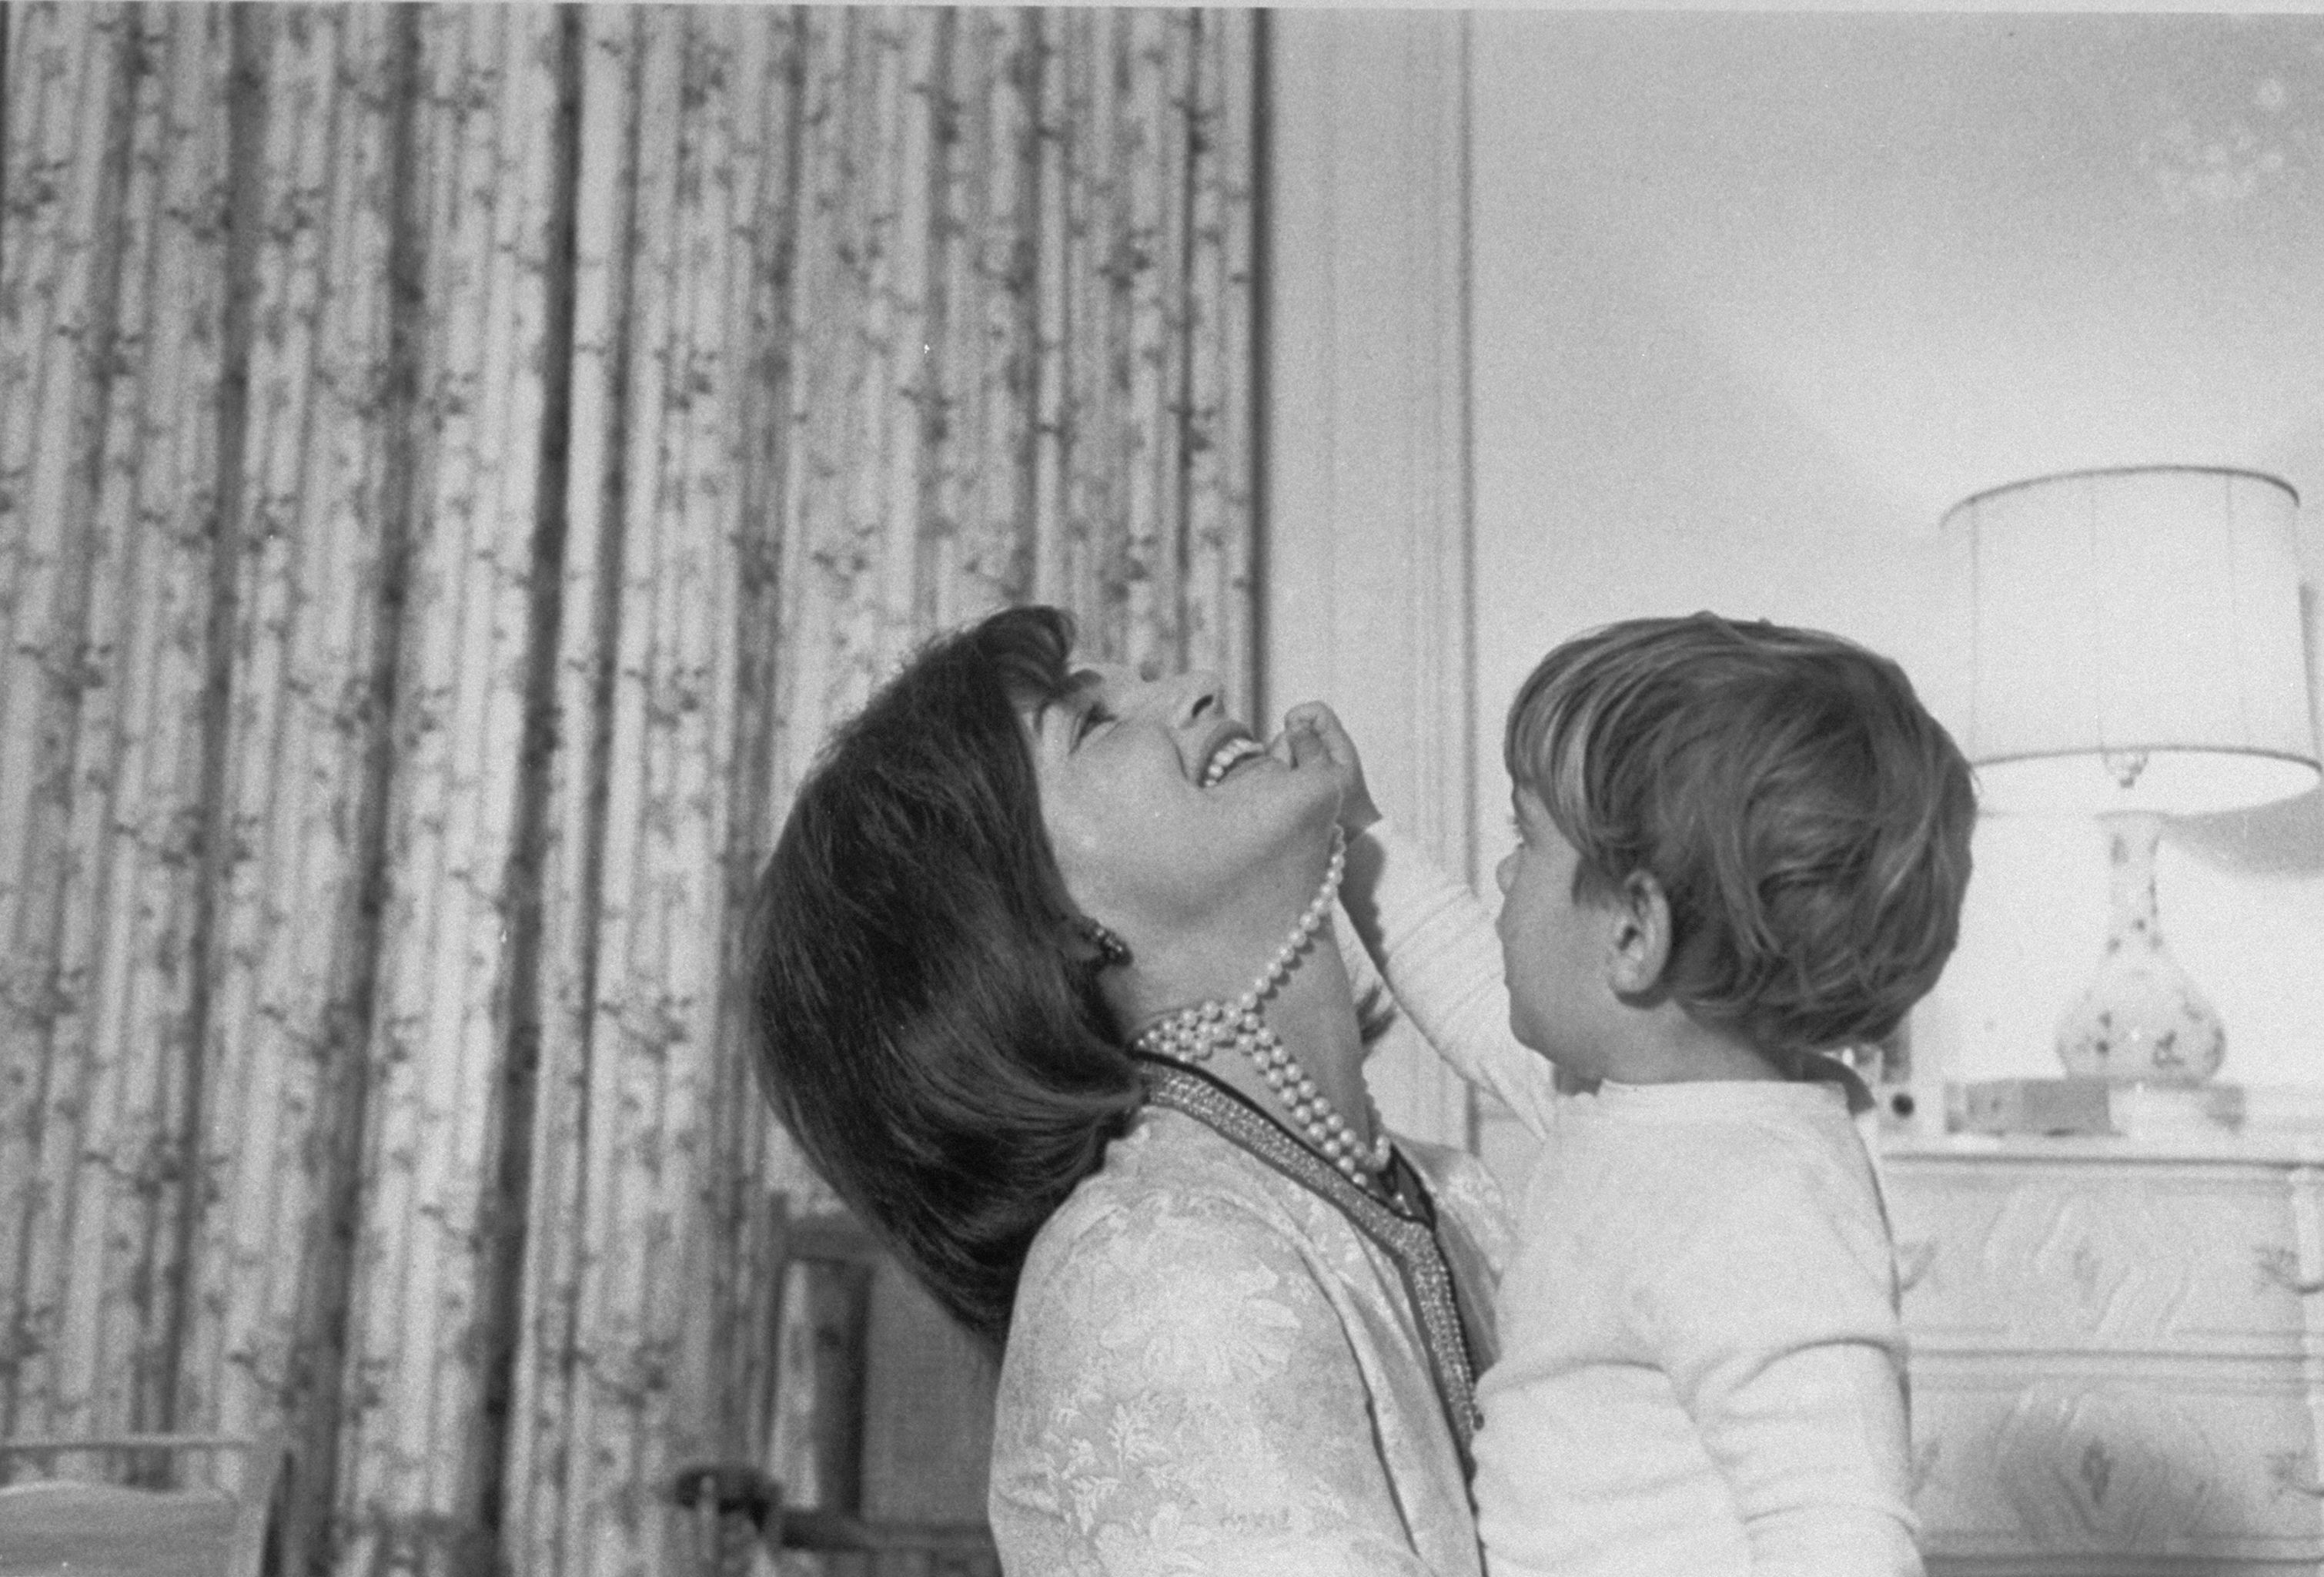 John F. Kennedy Jr. is seen playing with his mother's pearls.